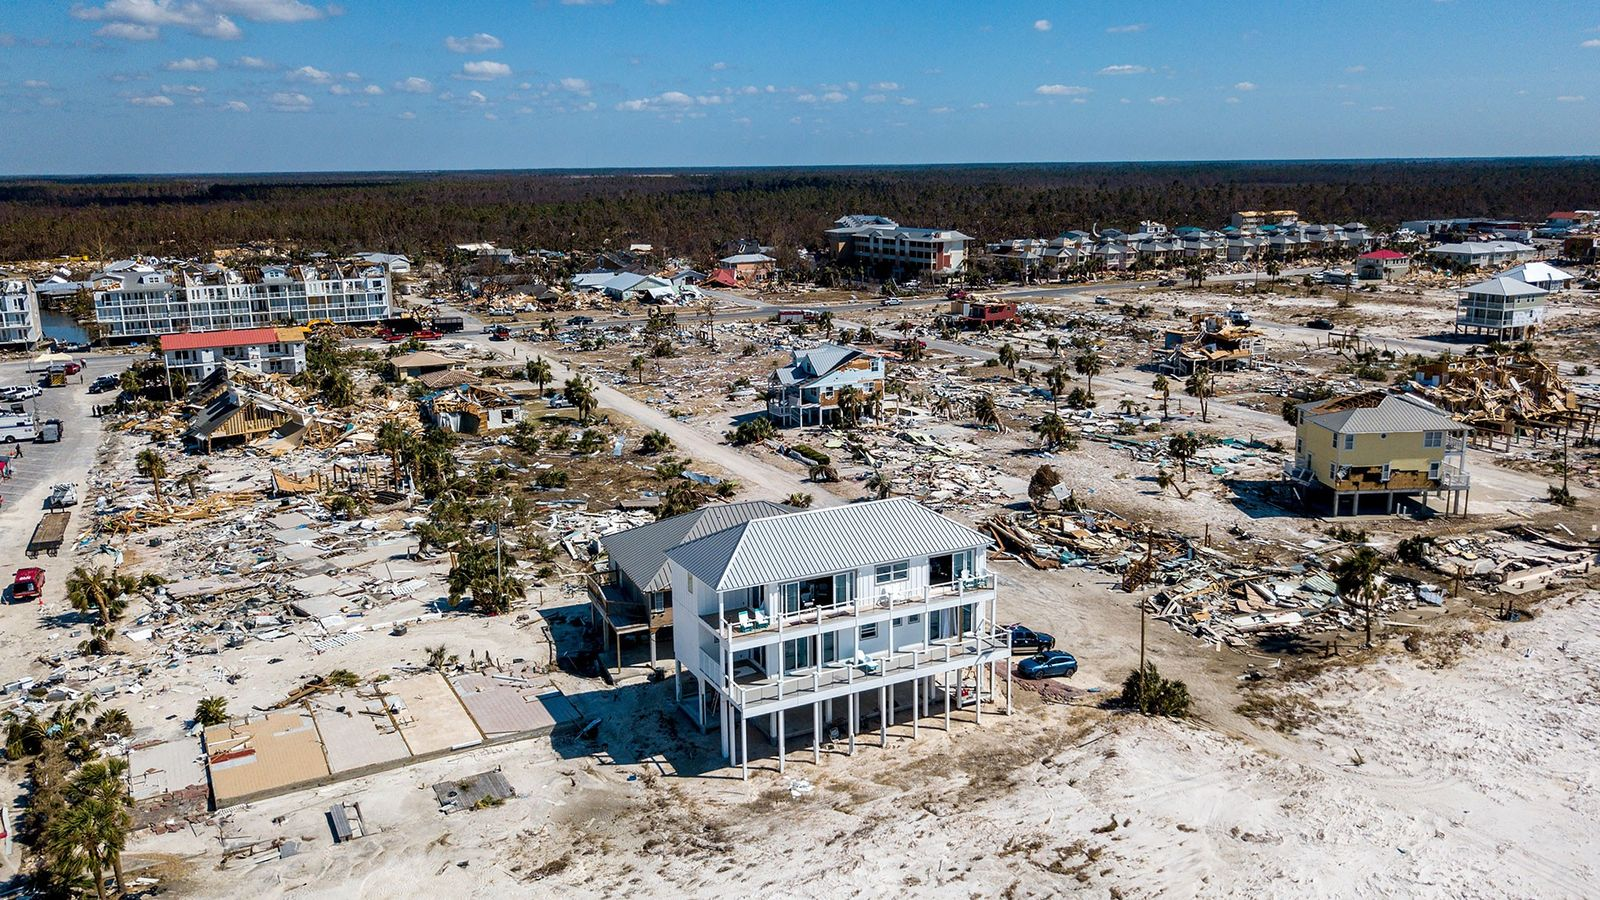 The home Russell King and his nephew Lebron Lackey had built to withstand 250-mph winds in ...